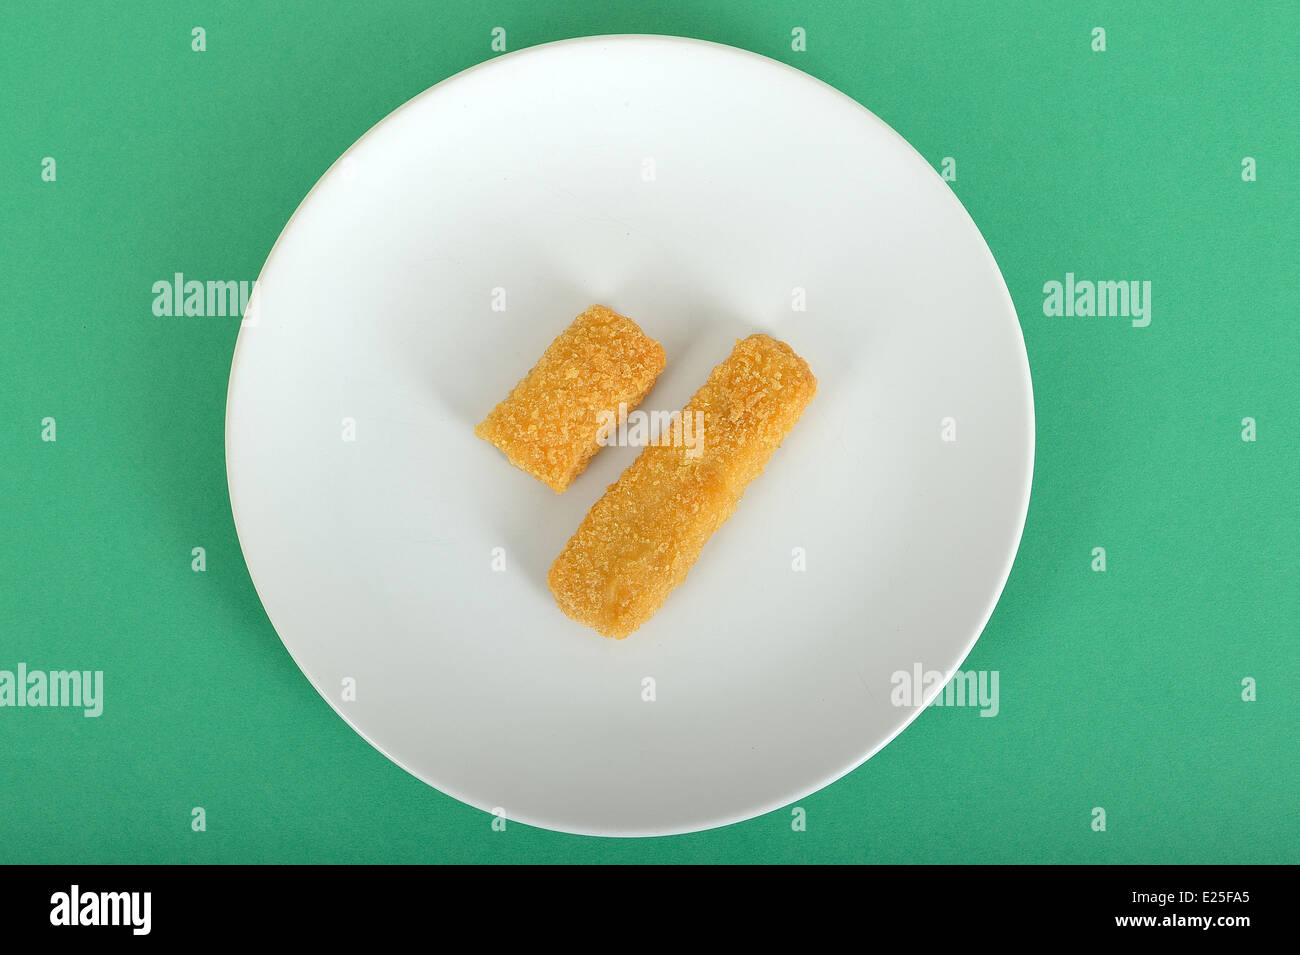 Ons And A Half Fish Fingers Providing 100 Calories Stock Image